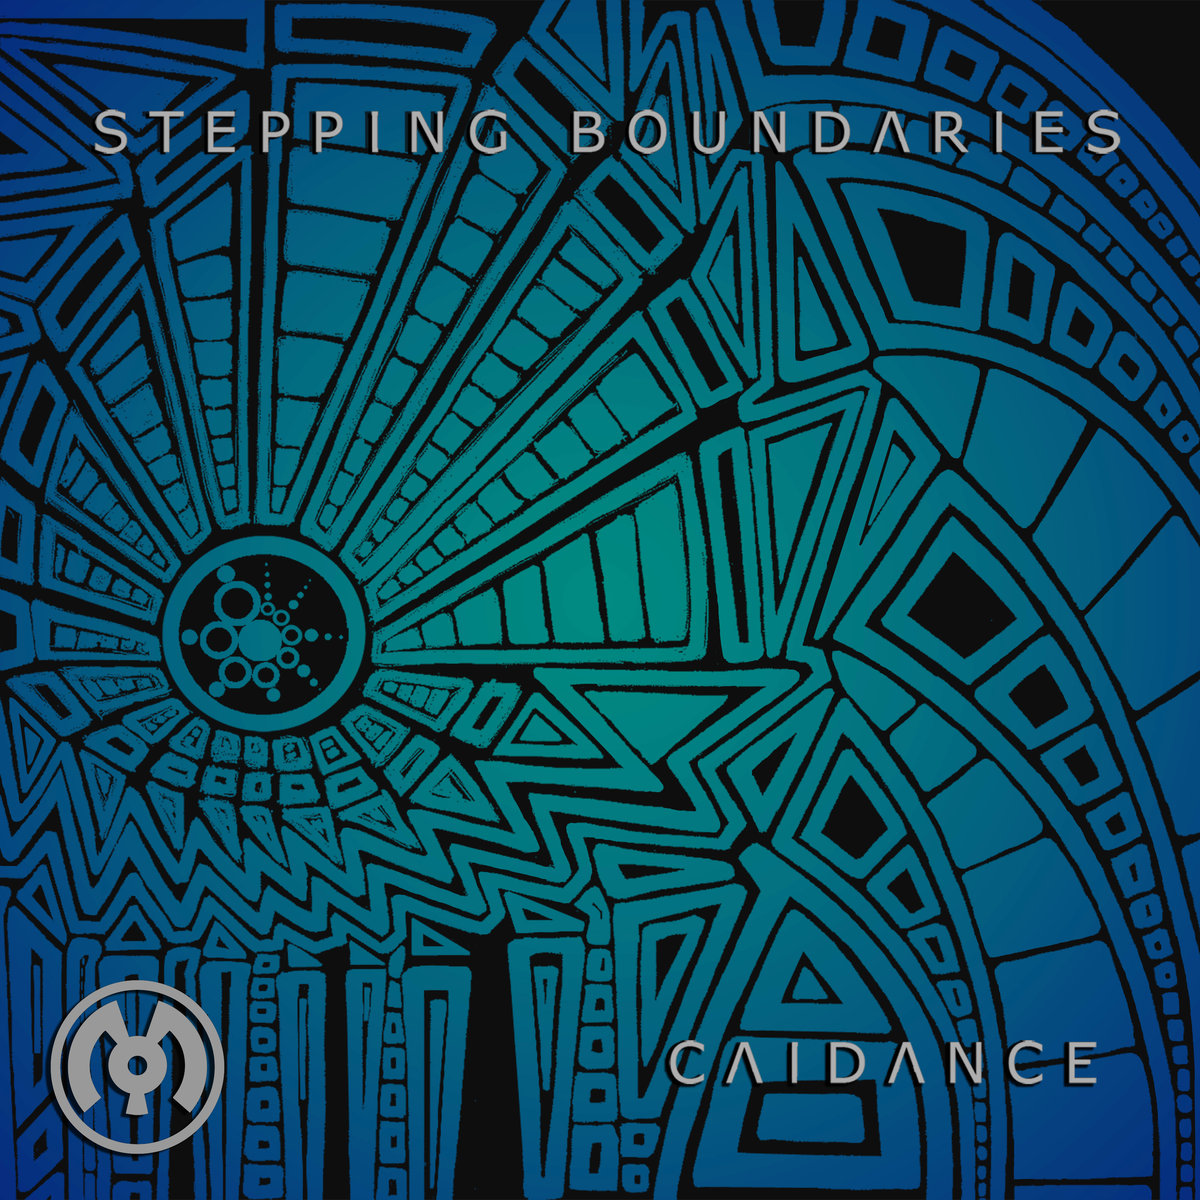 Caidance feat. Alexi Kenney - Starlit @ 'Stepping Boundaries' album (electronic, dubstep)